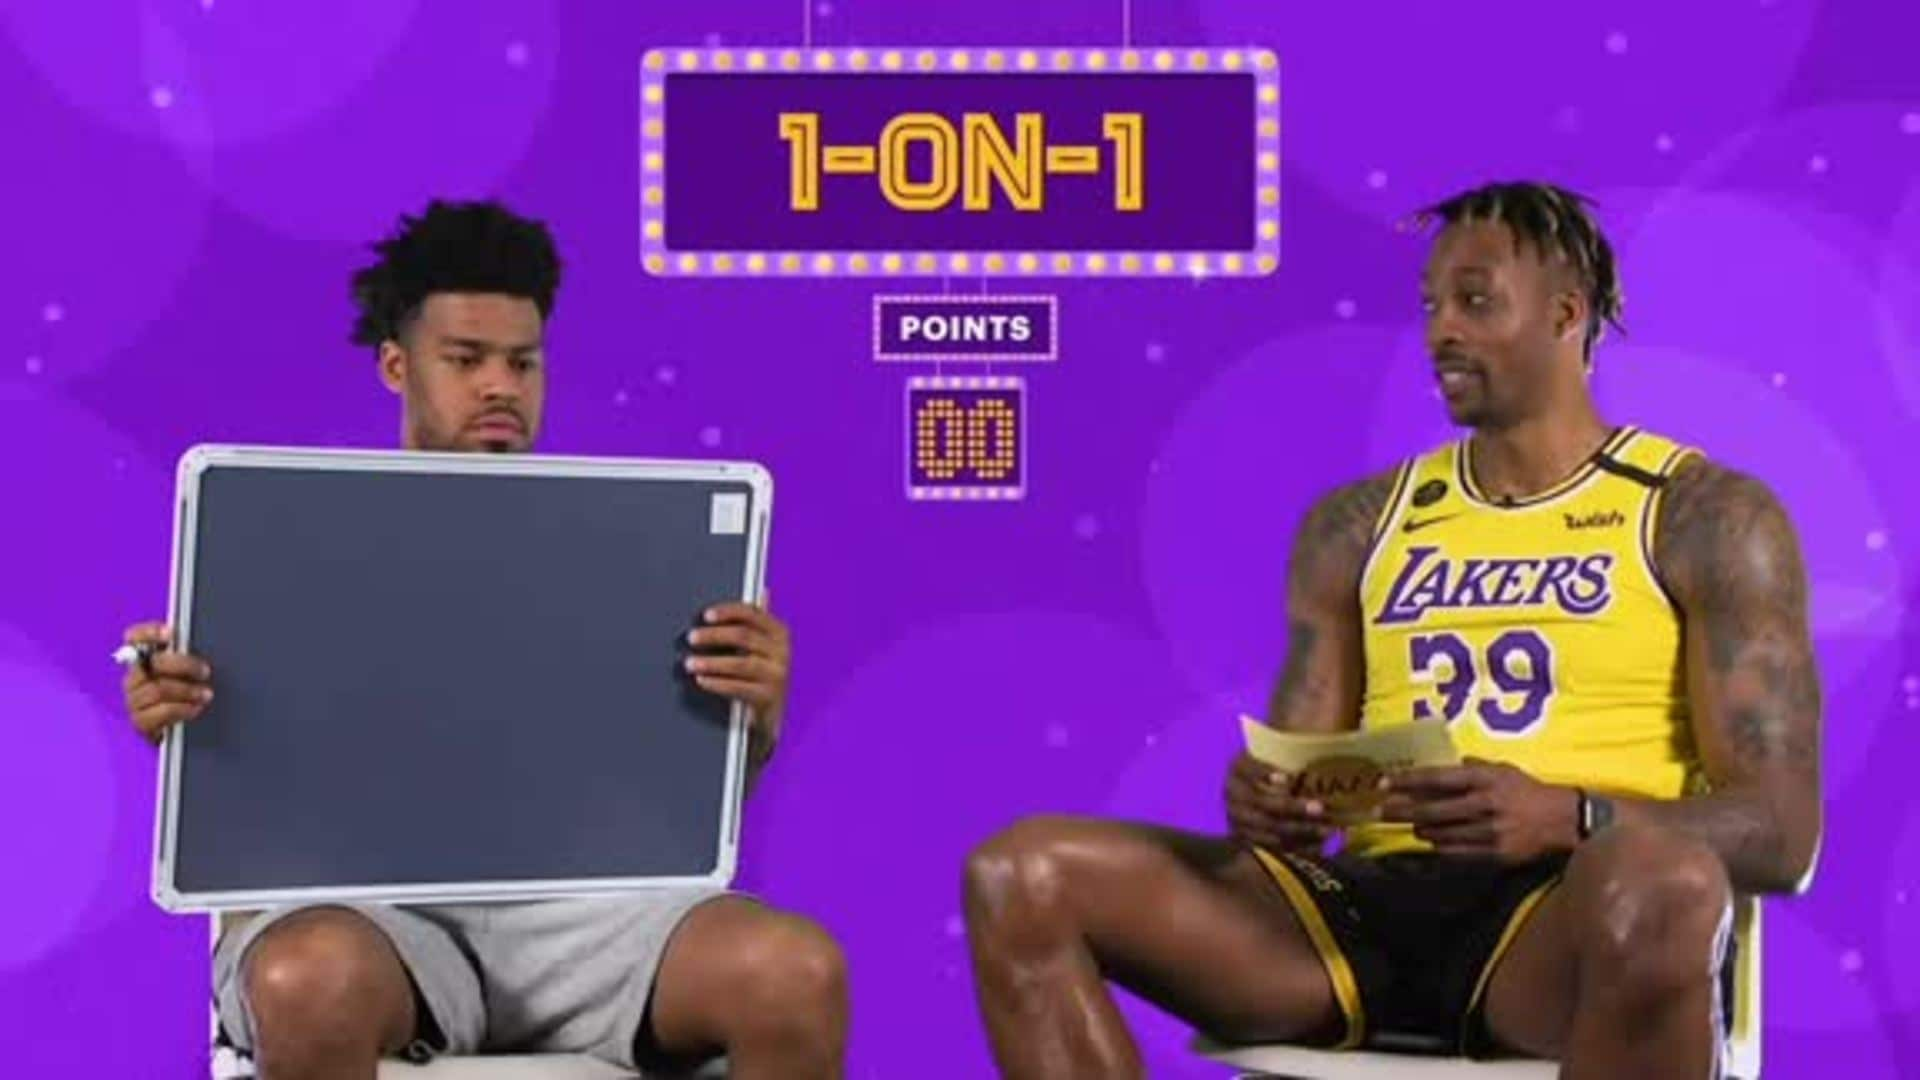 1-on-1: Quinn and Dwight